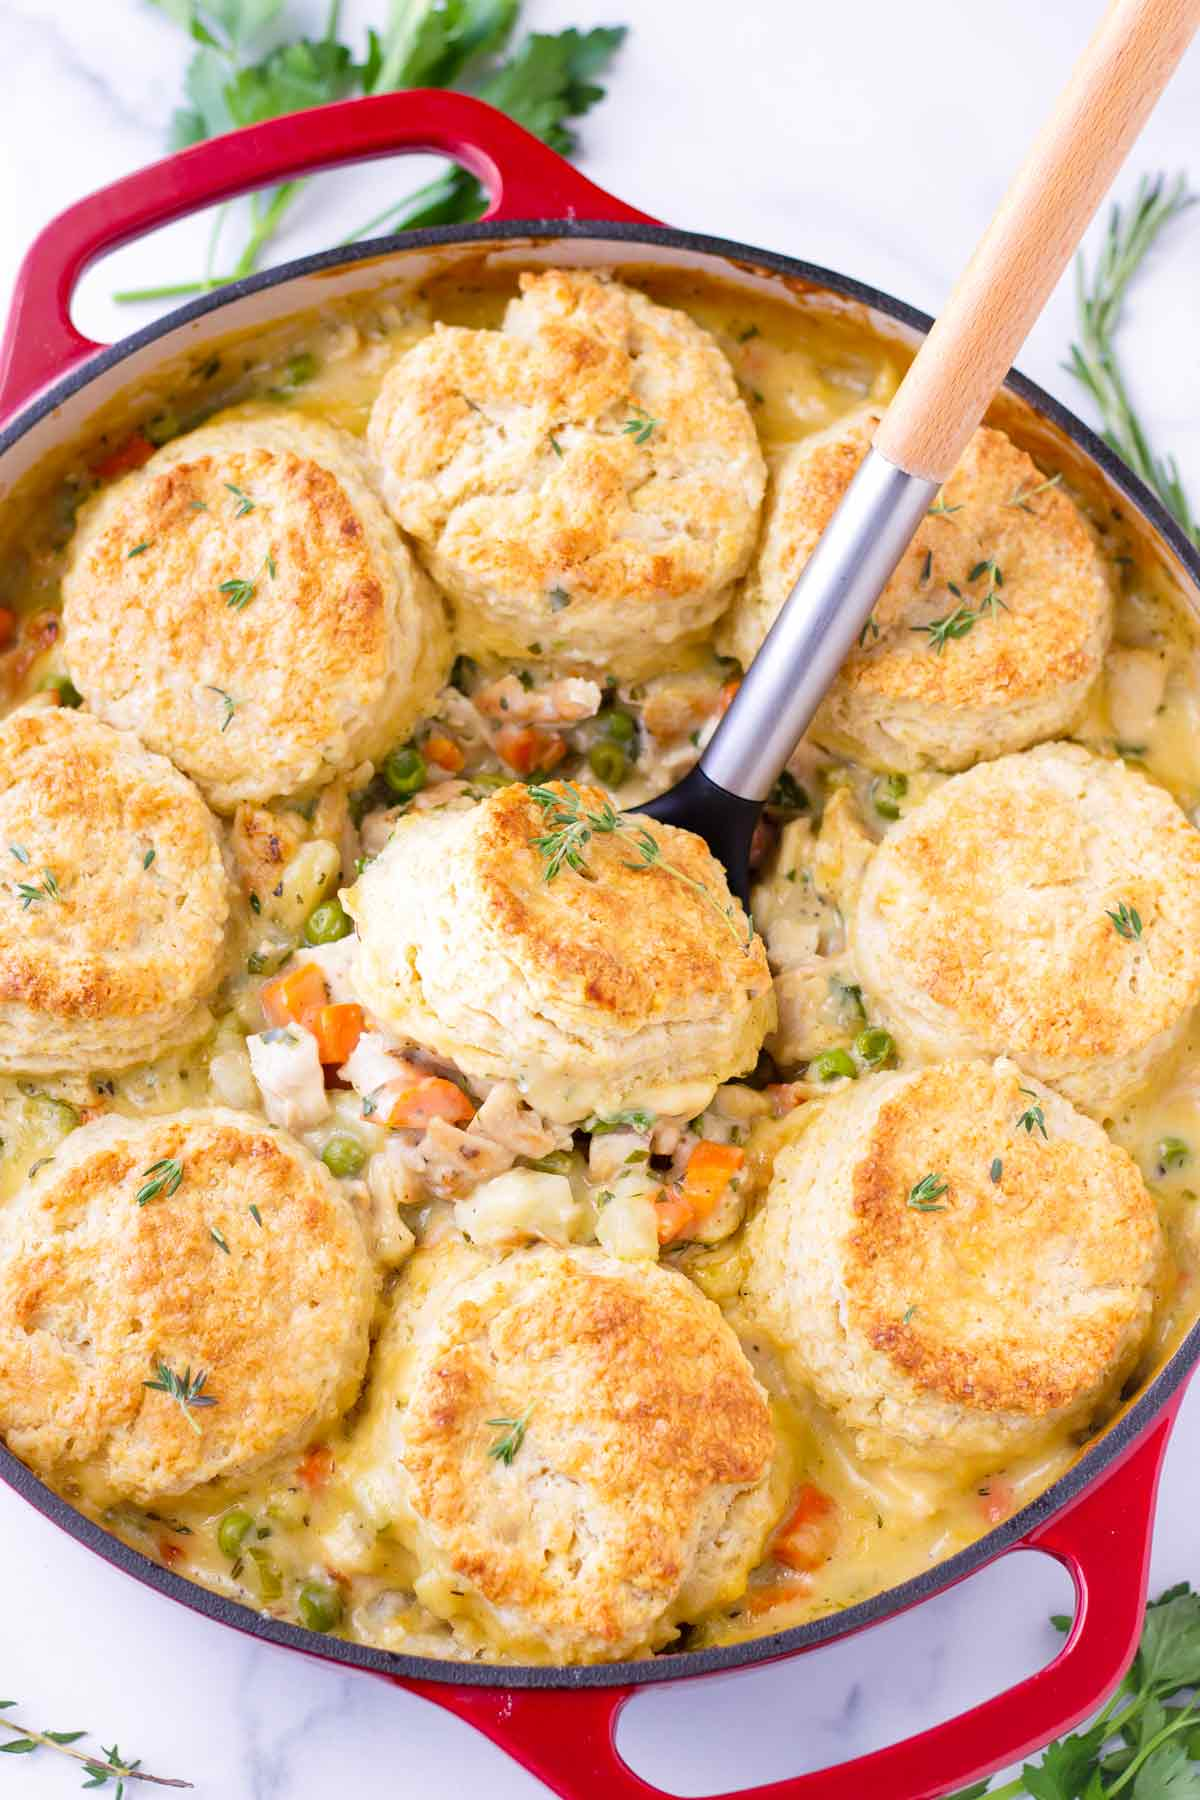 Chicken stew topped with homemade biscuits